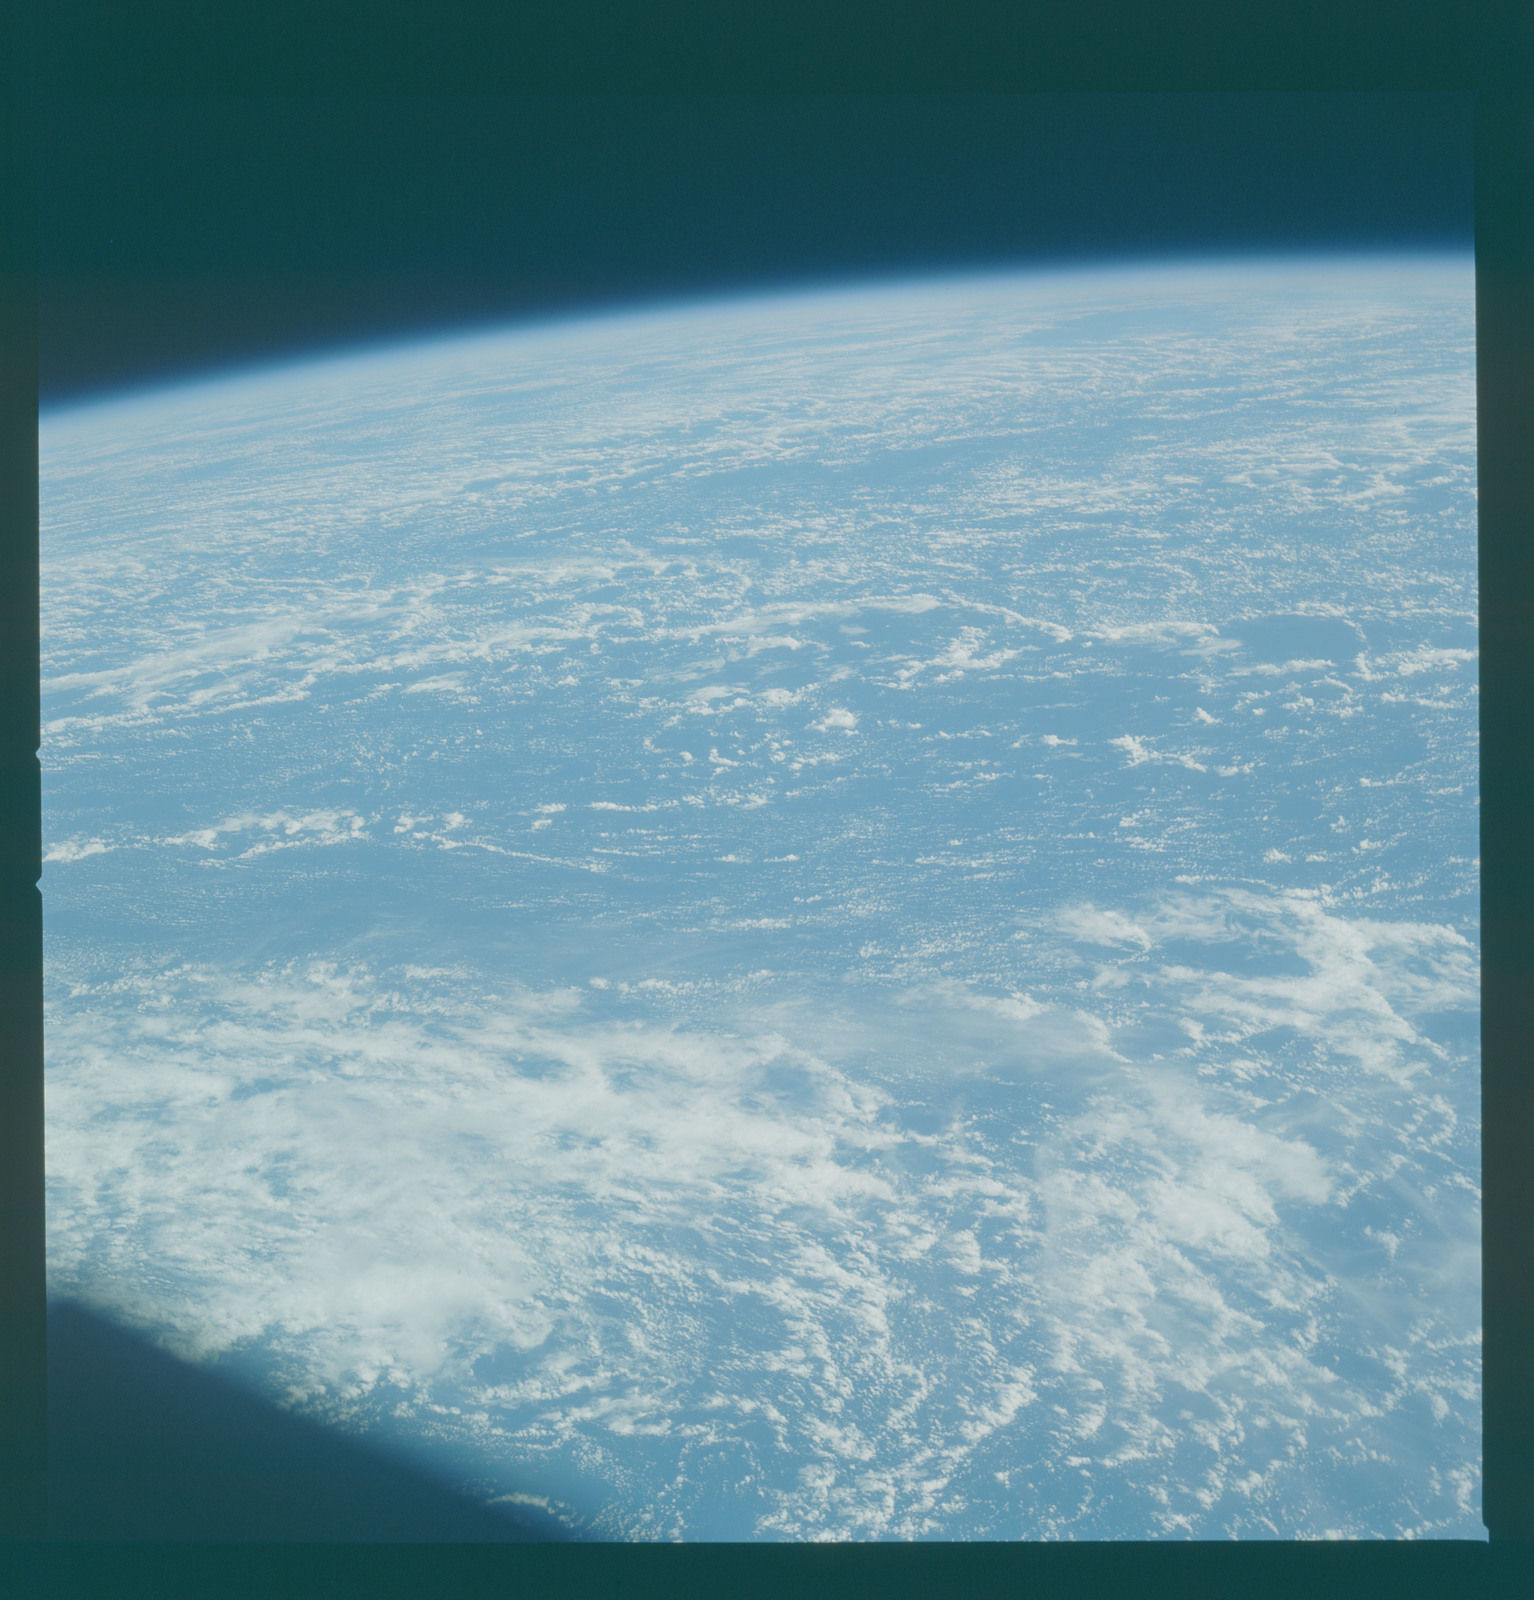 41C-33-1309 - STS-41C - Earth observations taken from shuttle Challenger during STS-41C